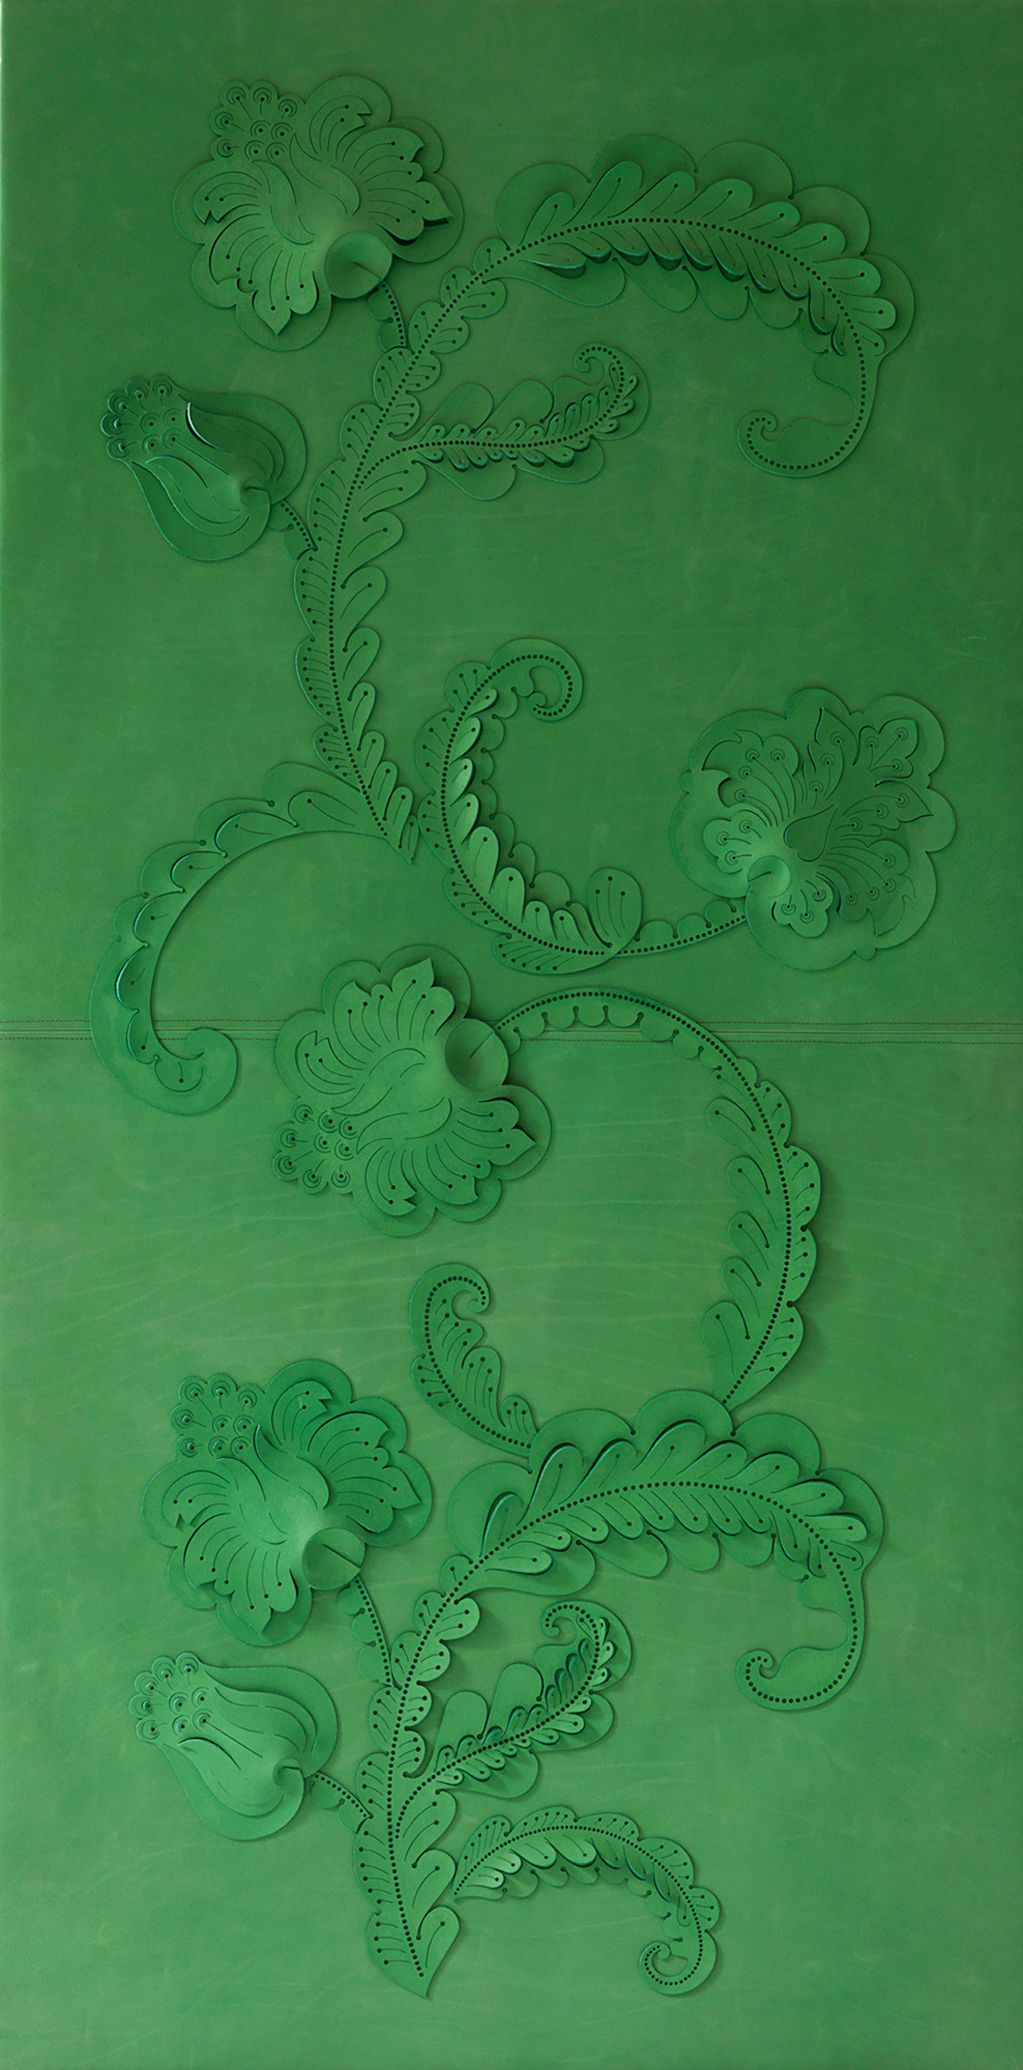 A decorative leather wall panel made from hand cut and sculpted leather with a damask inspired pattern from vintage woven textiles